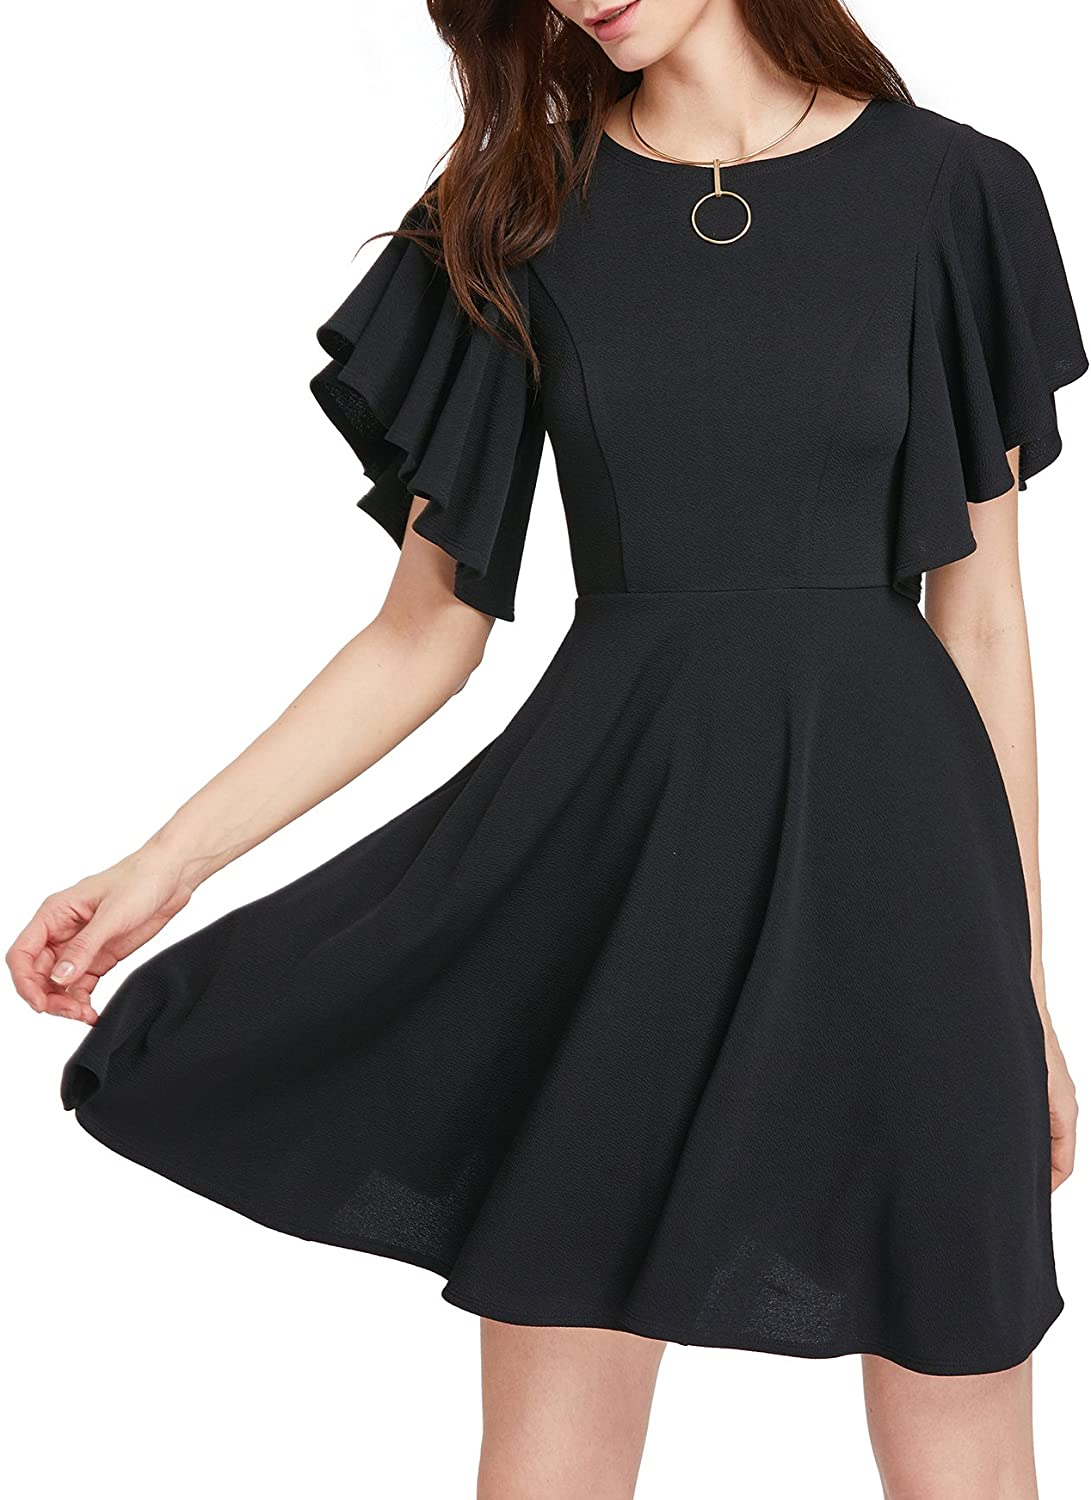 DAILYHAUTE Women's dress BLACK / S Haute Edition Women's Flared Skater Cocktail Party Dress